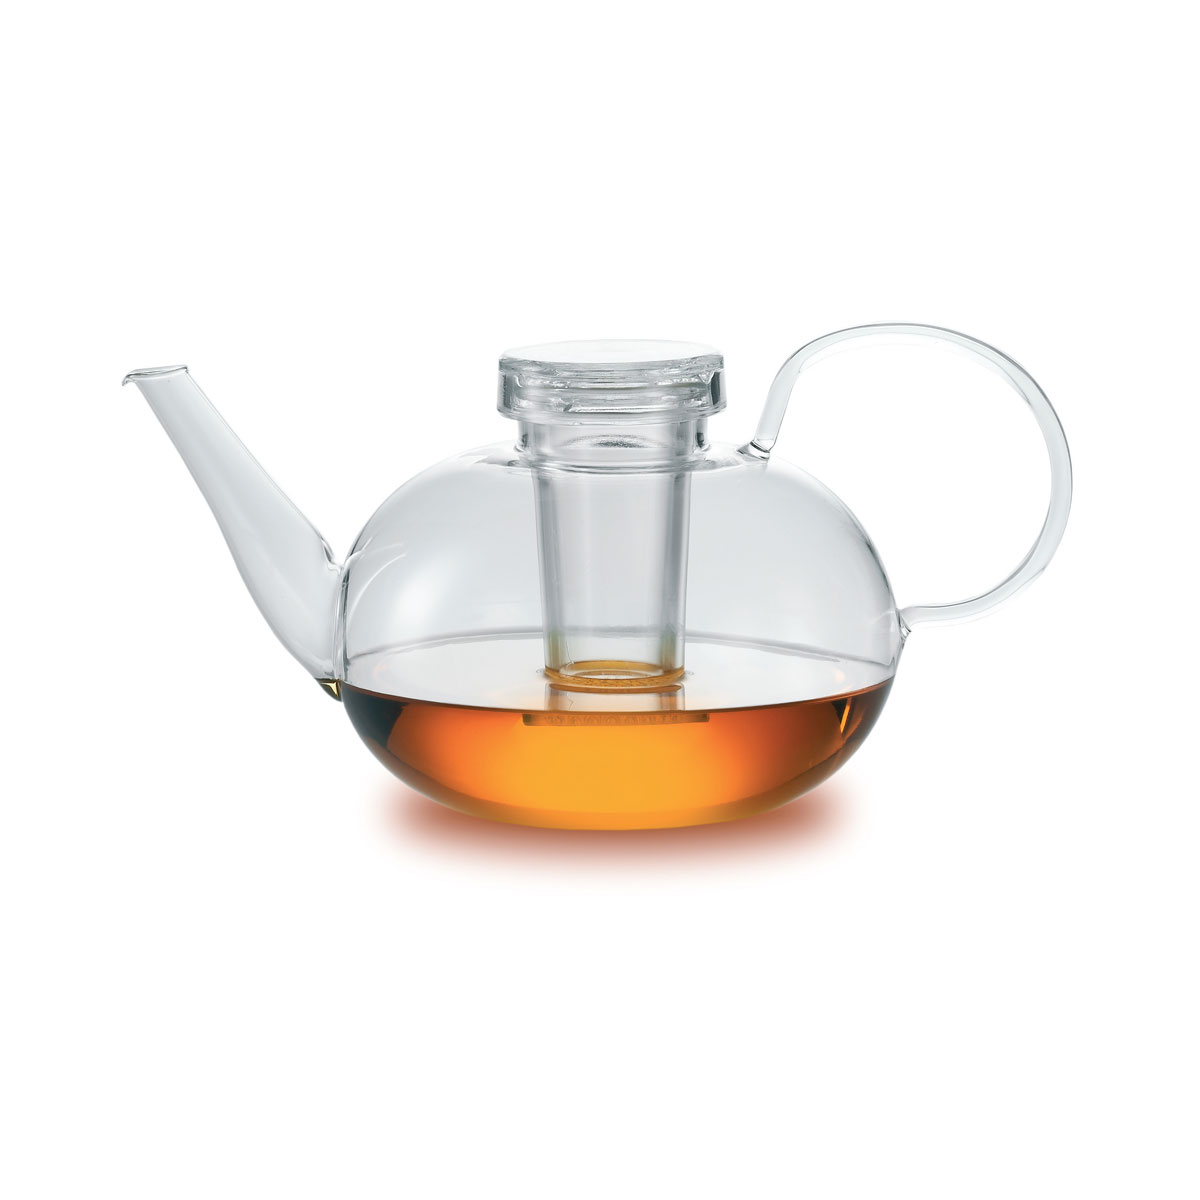 Jenaer Glas Wagenfeld Teapot With Lid and Filter